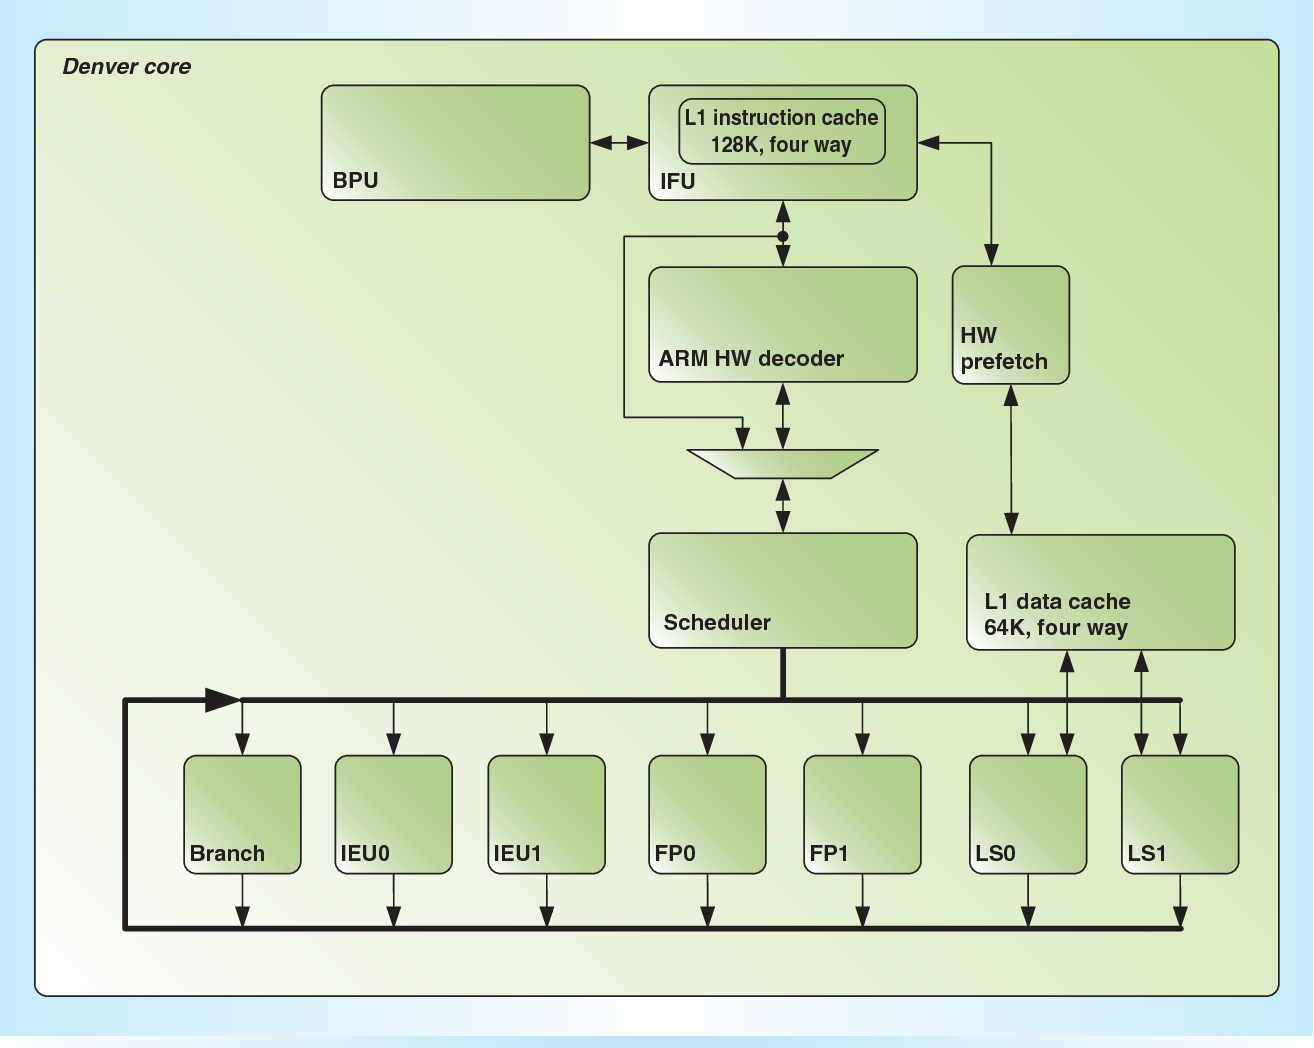 block diagram of the denver cpu  the diagram shows the important functional